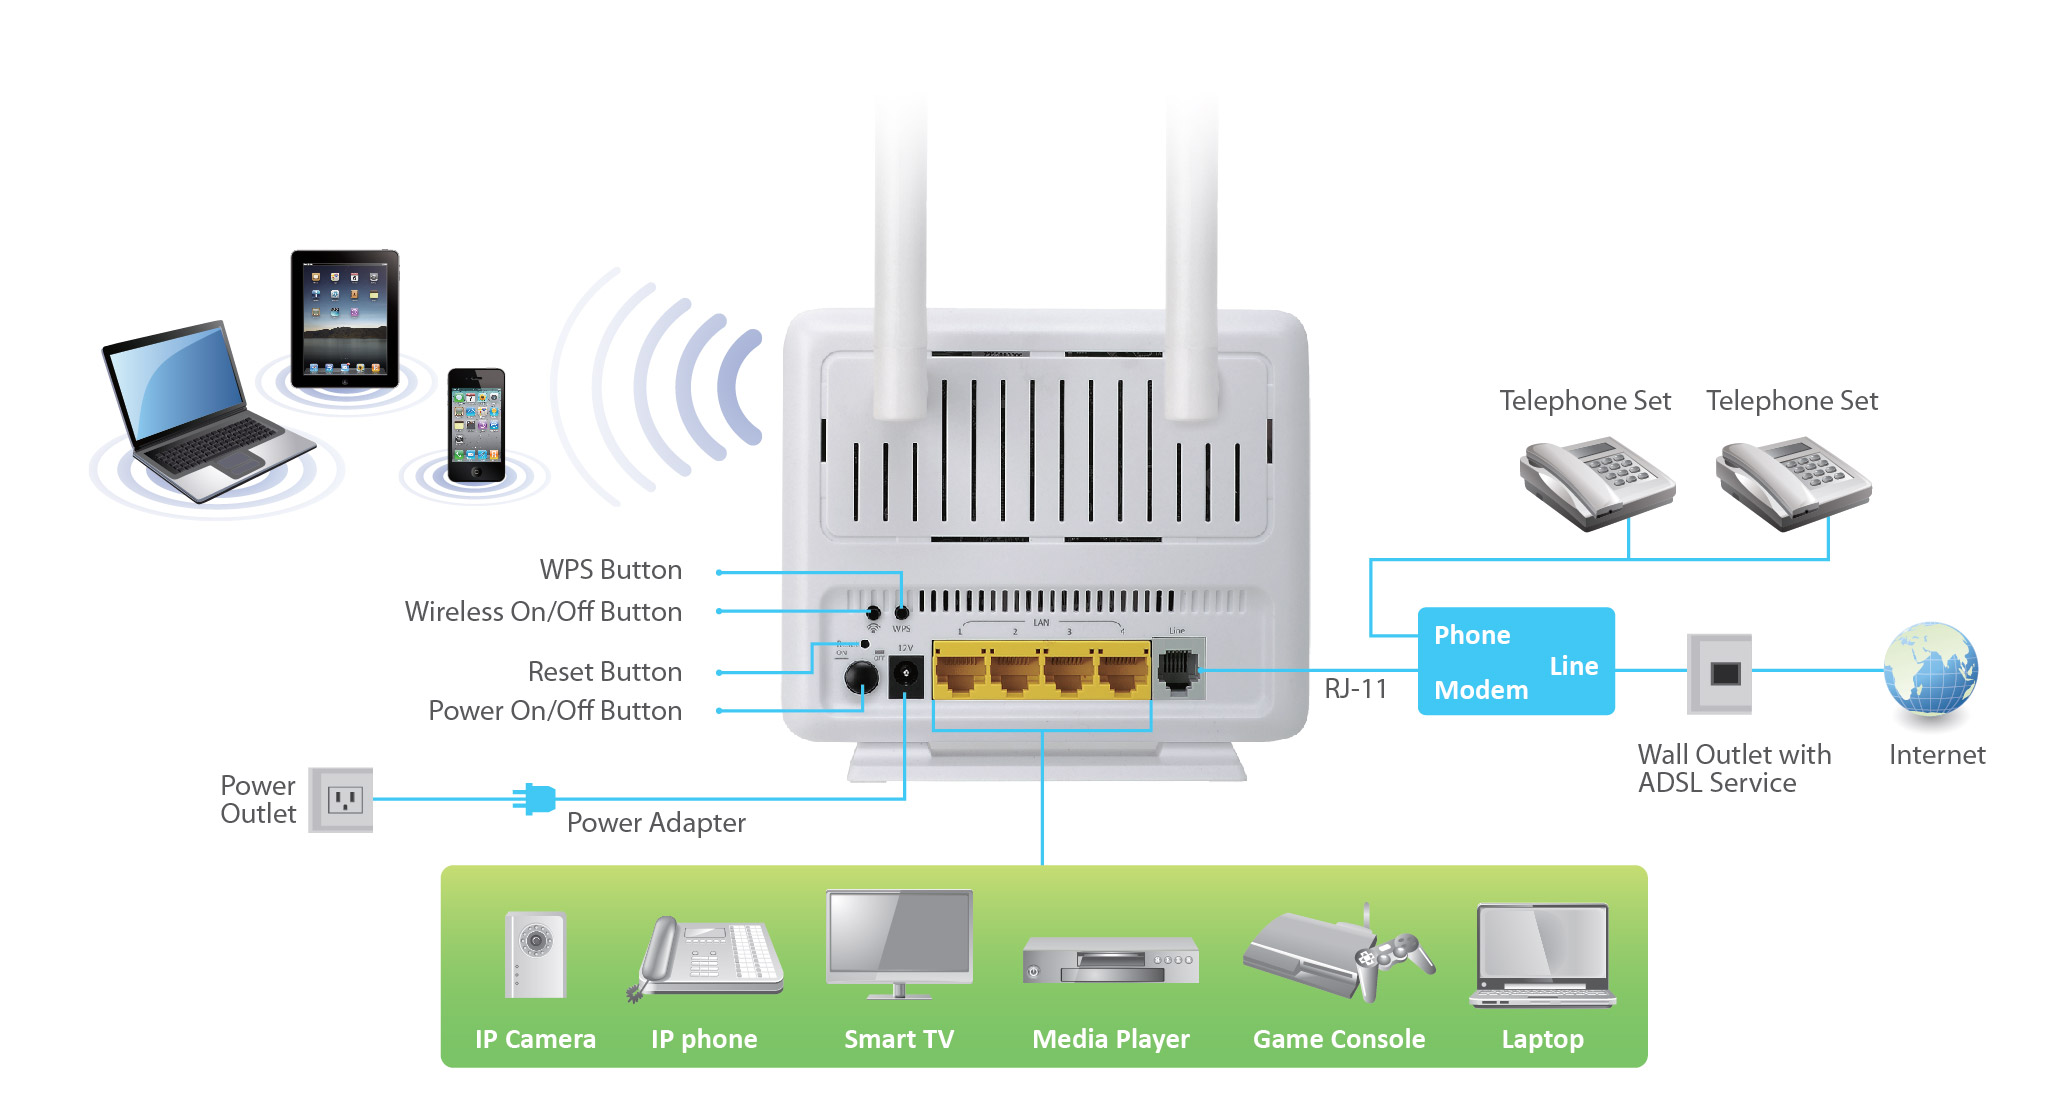 AR 7286WnA_B_application_diagram edimax adsl modem routers n300 wi fi n300 wireless adsl wireless router wiring diagram at readyjetset.co